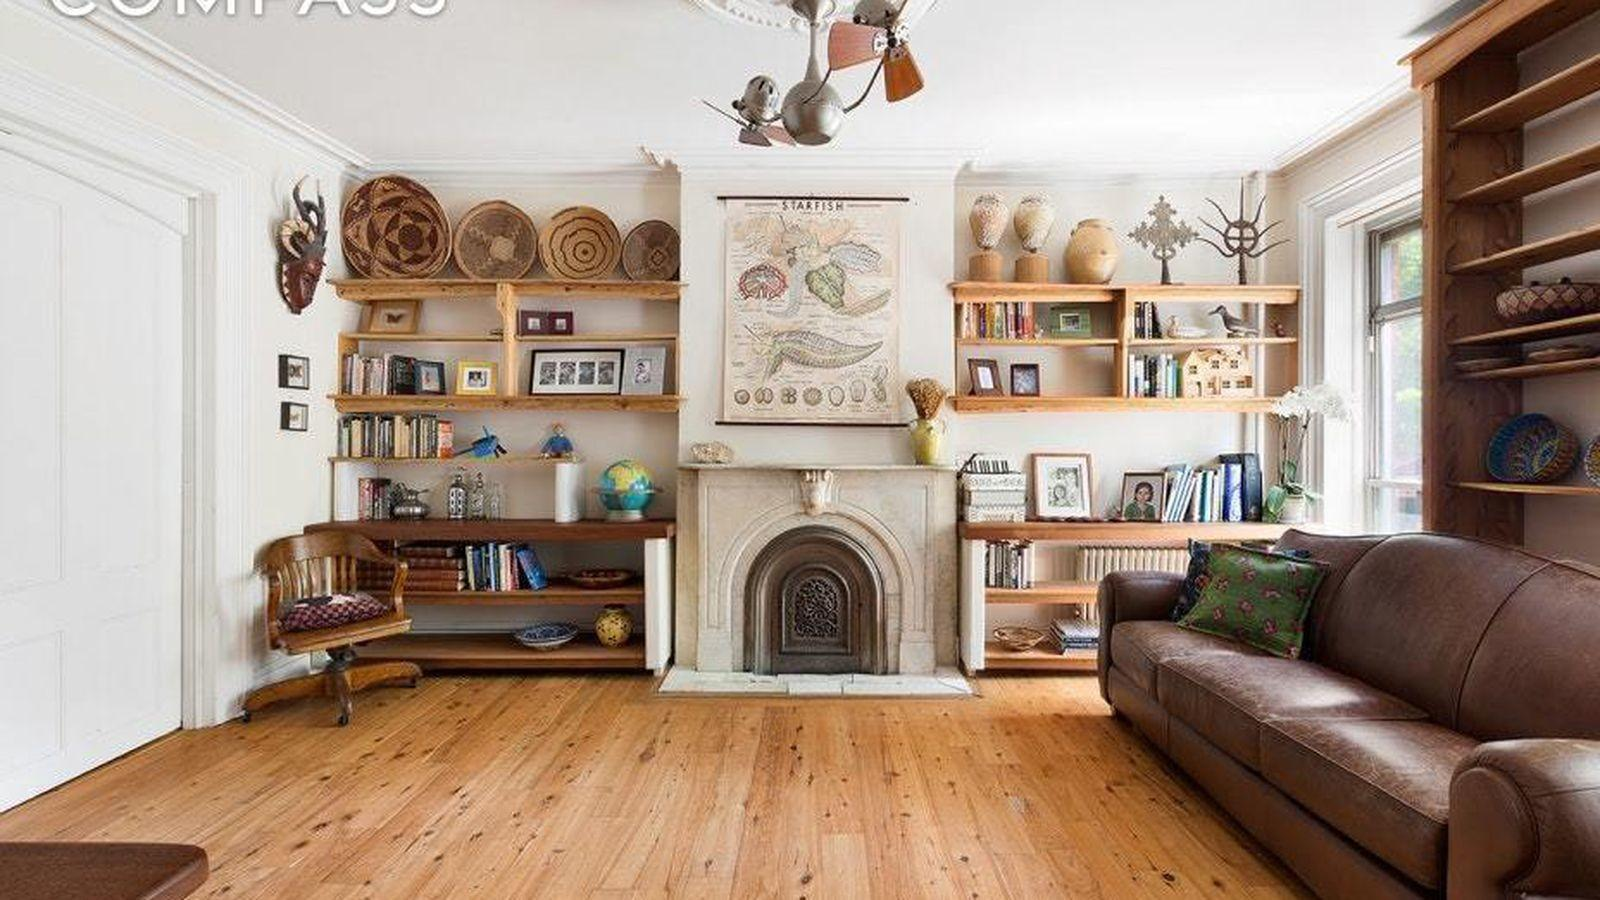 137 Year Old Carroll Gardens Home Contemporary